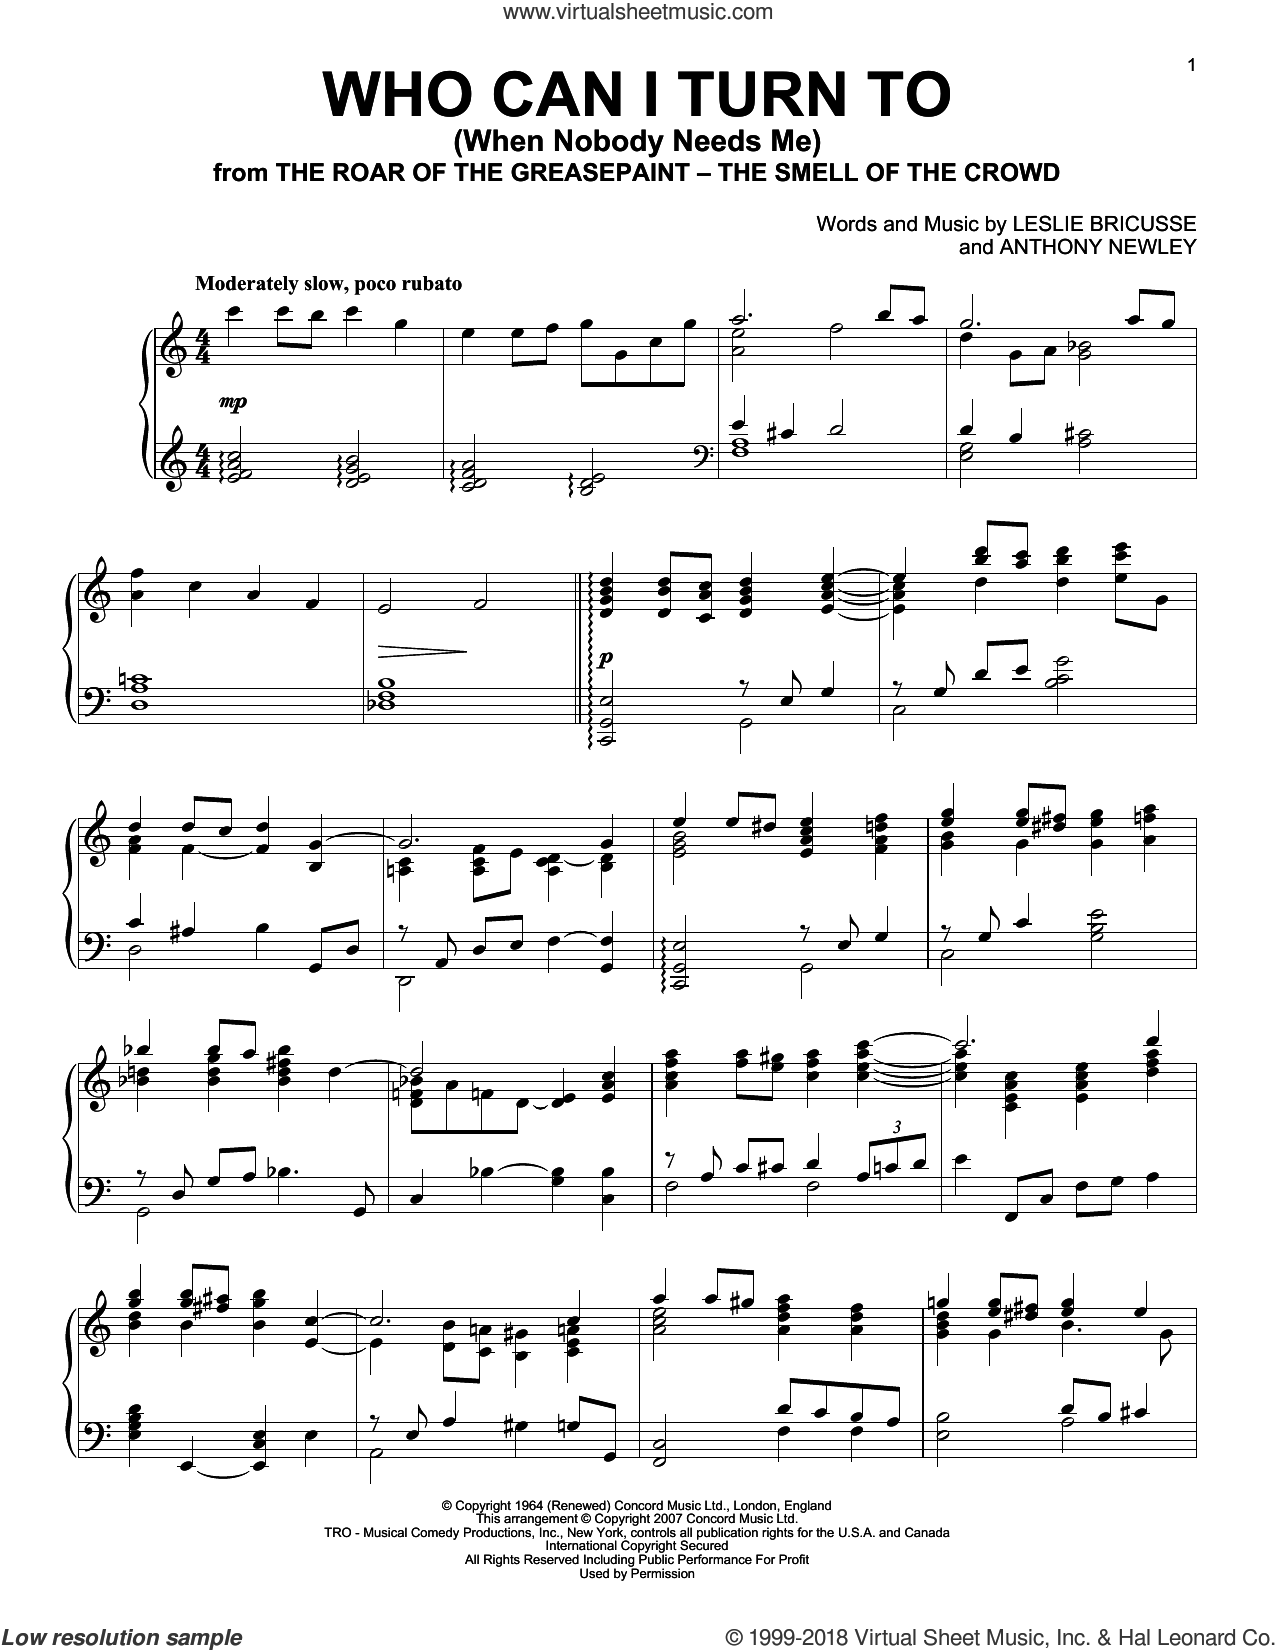 Who Can I Turn To (When Nobody Needs Me) sheet music for piano solo by Tony Bennett, Anthony Newley and Leslie Bricusse, intermediate skill level